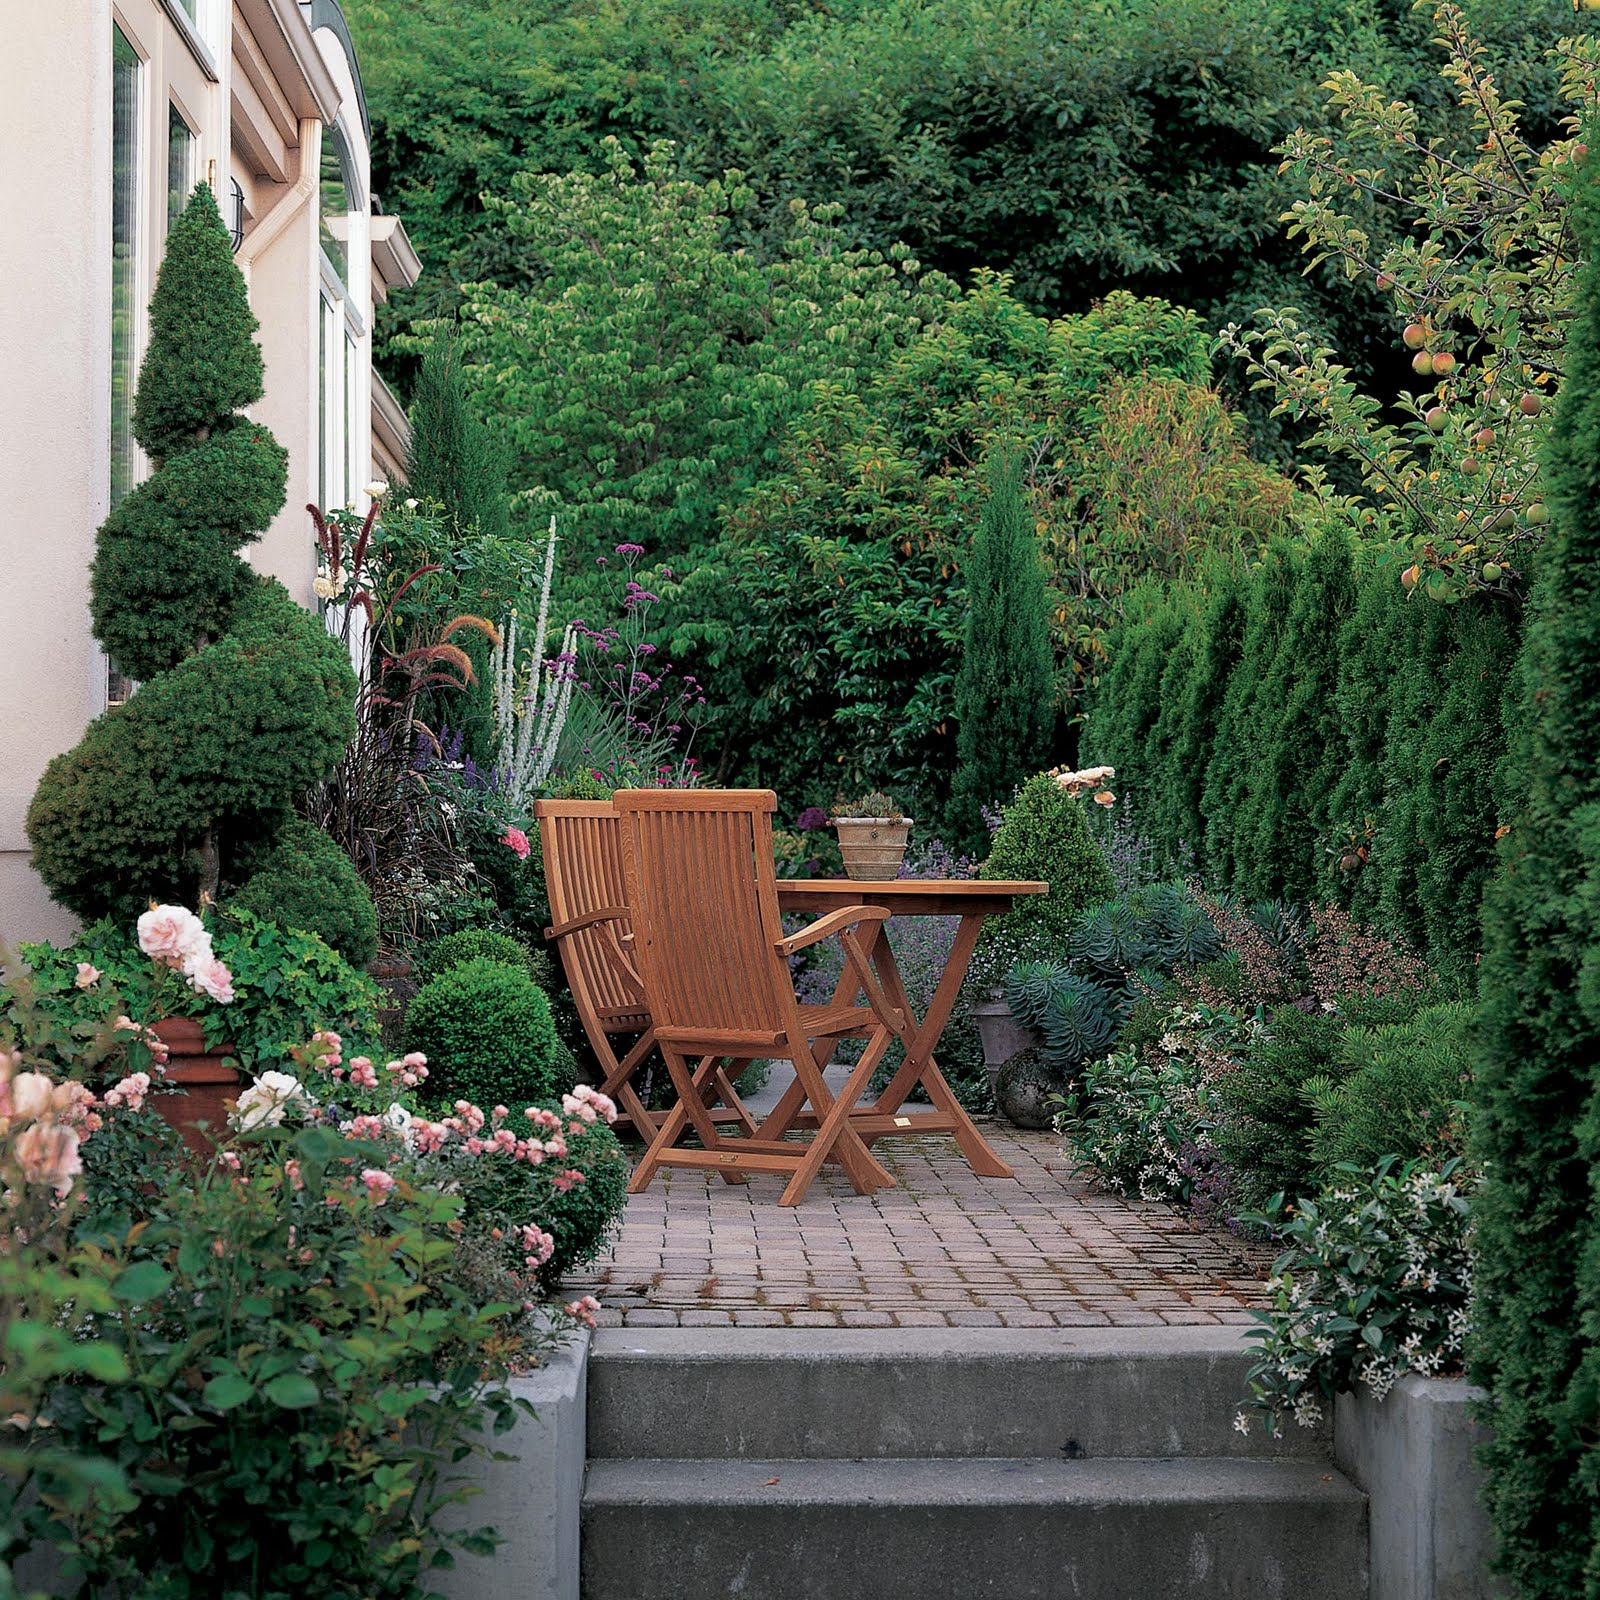 Danger garden landscaping for privacy innovative ways to for Backyard privacy landscaping trees